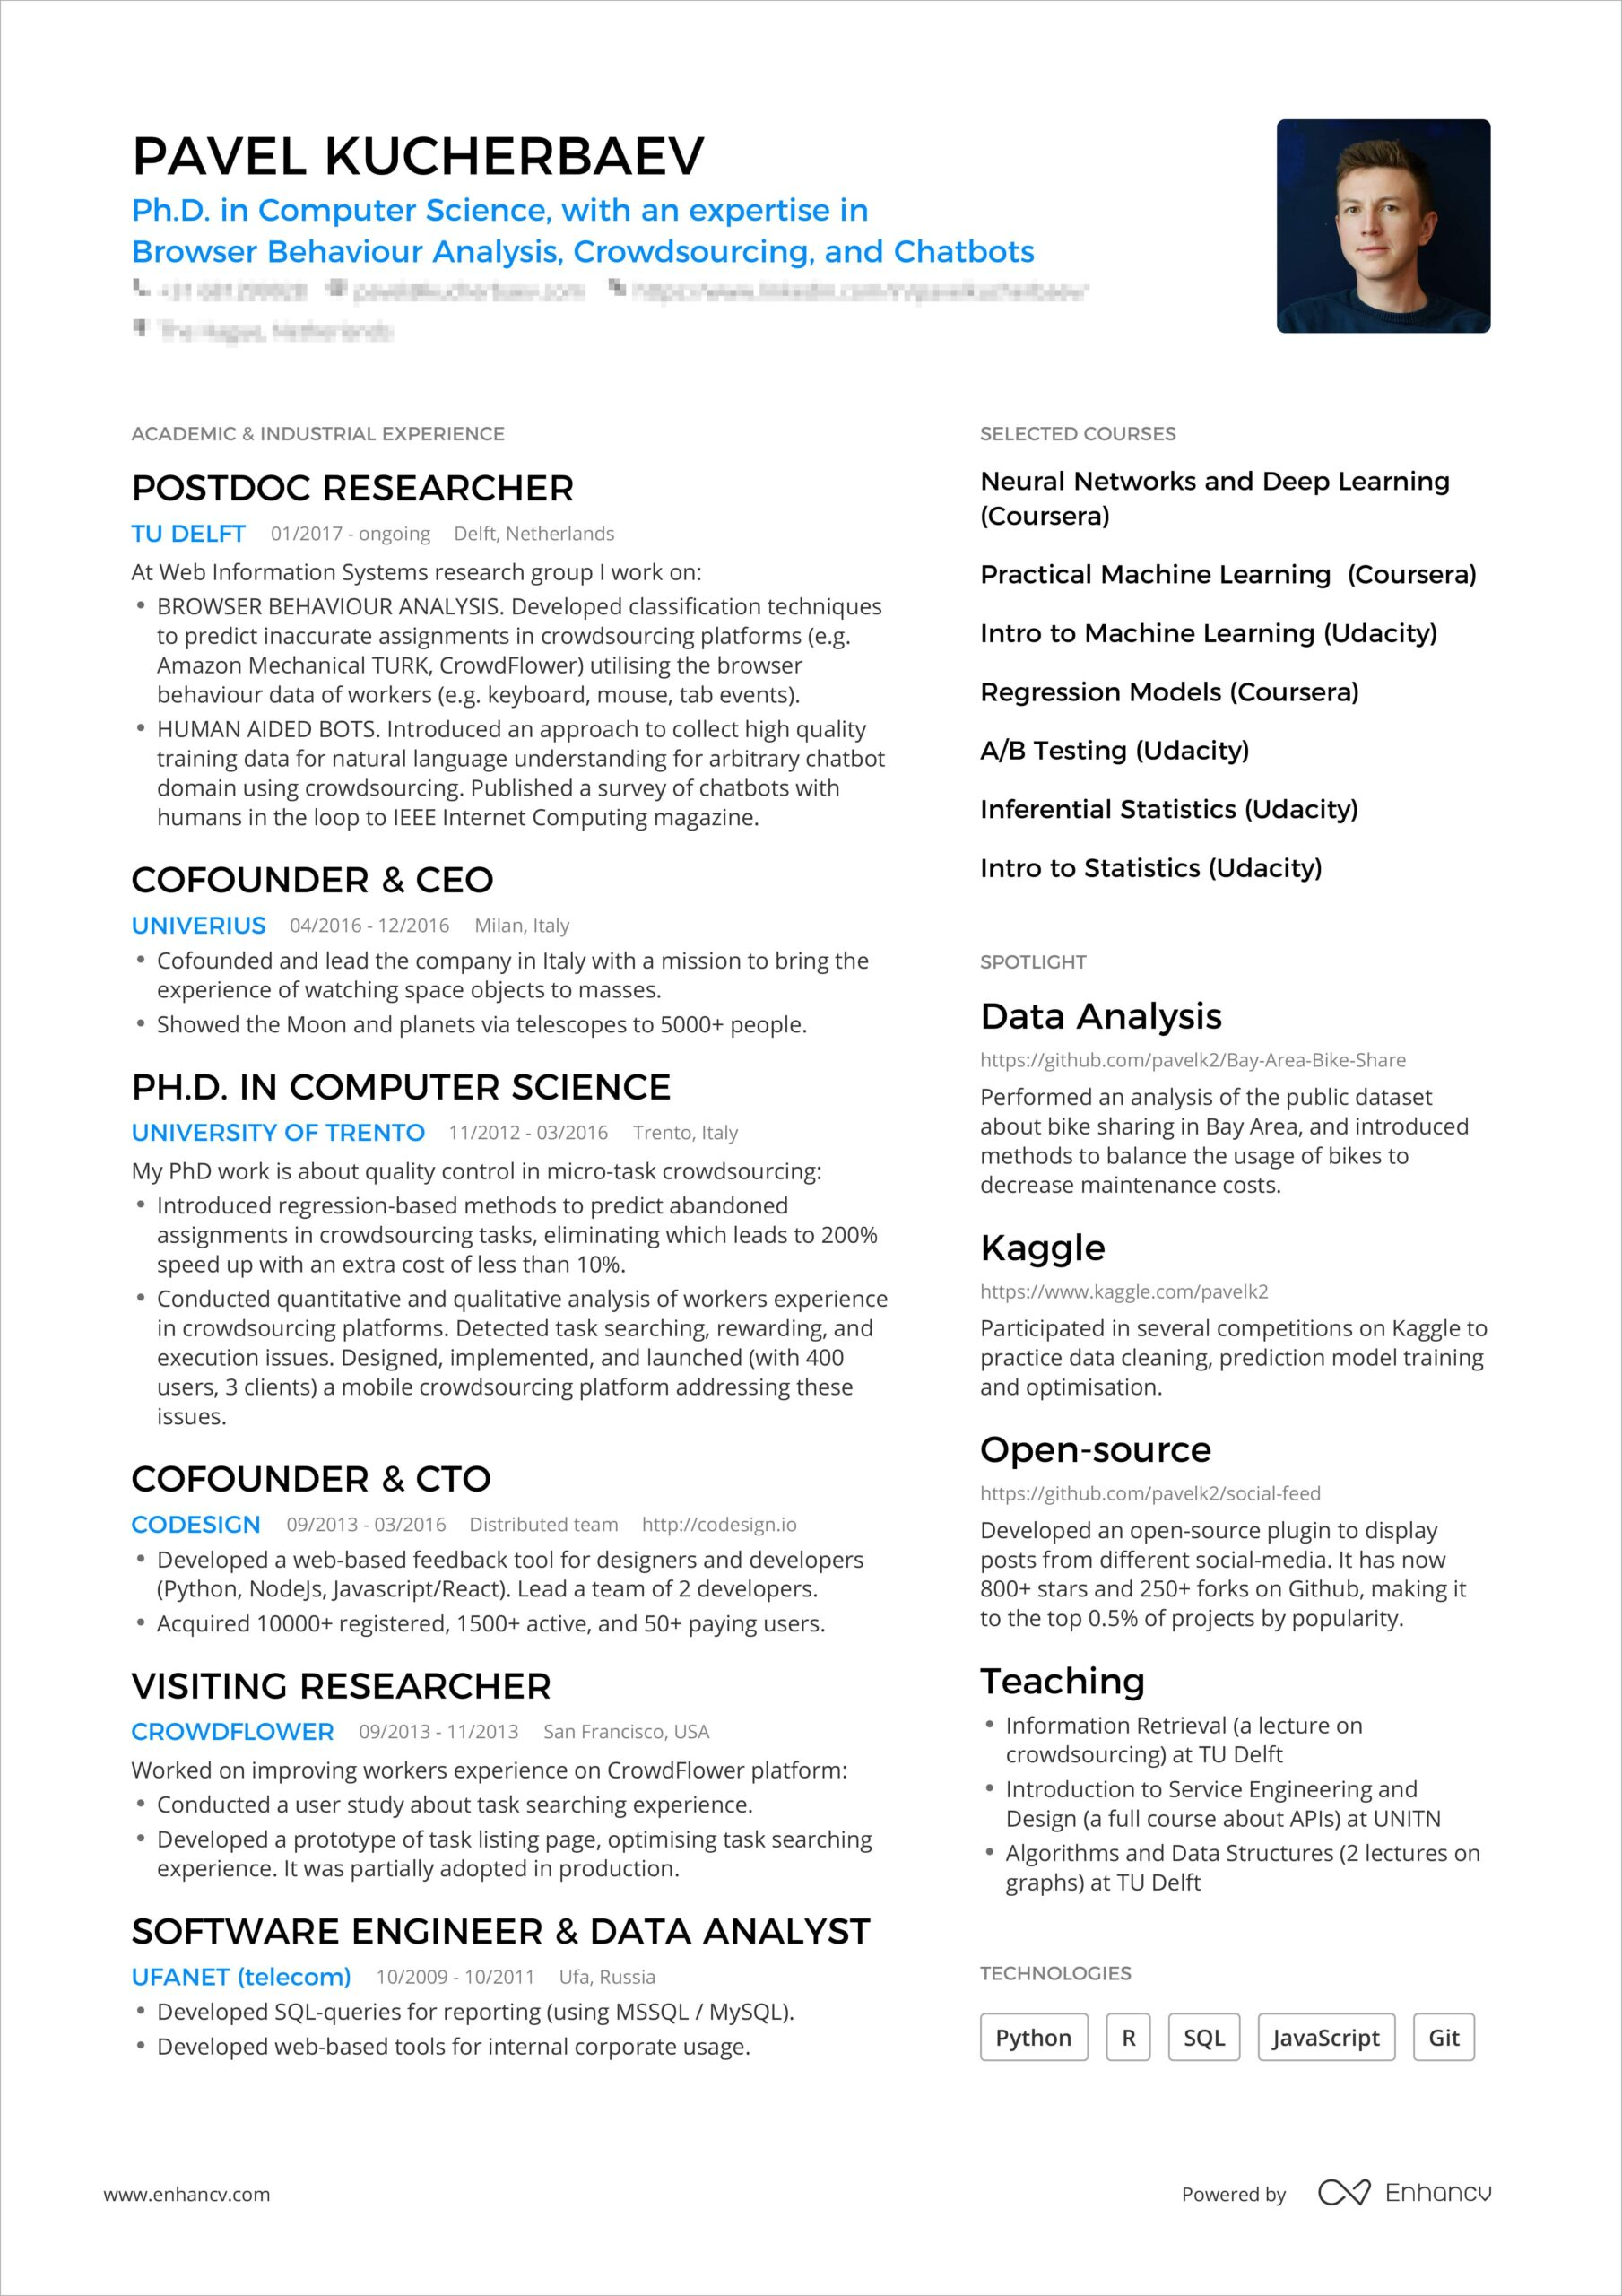 powerful one resume examples you can use now pavel booking bordered min public health Resume One Page Resume Examples